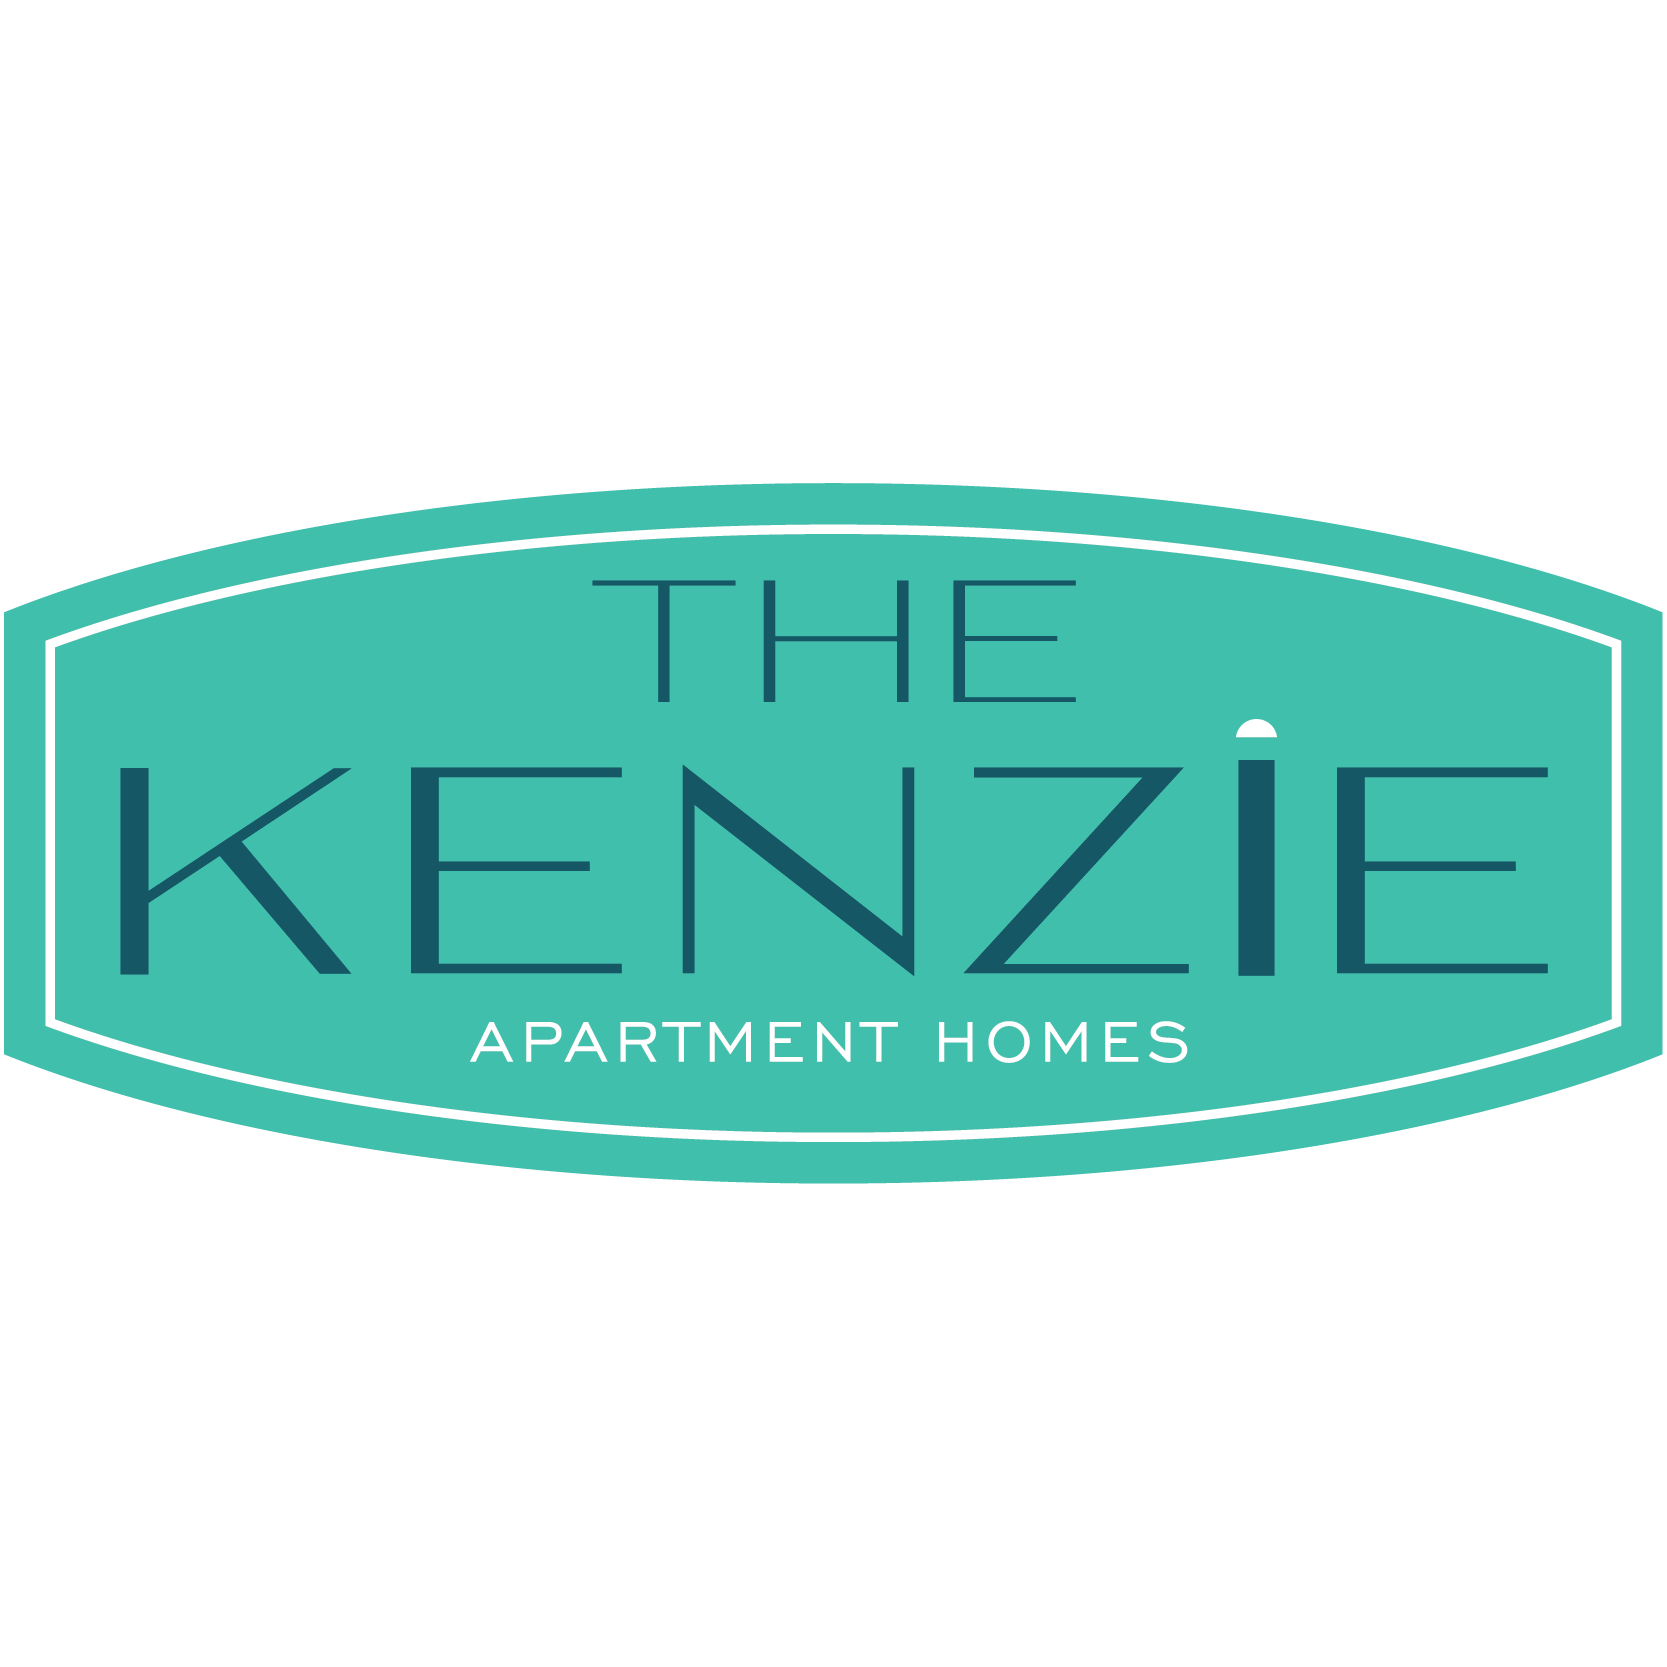 The Kenzie Apartment Homes